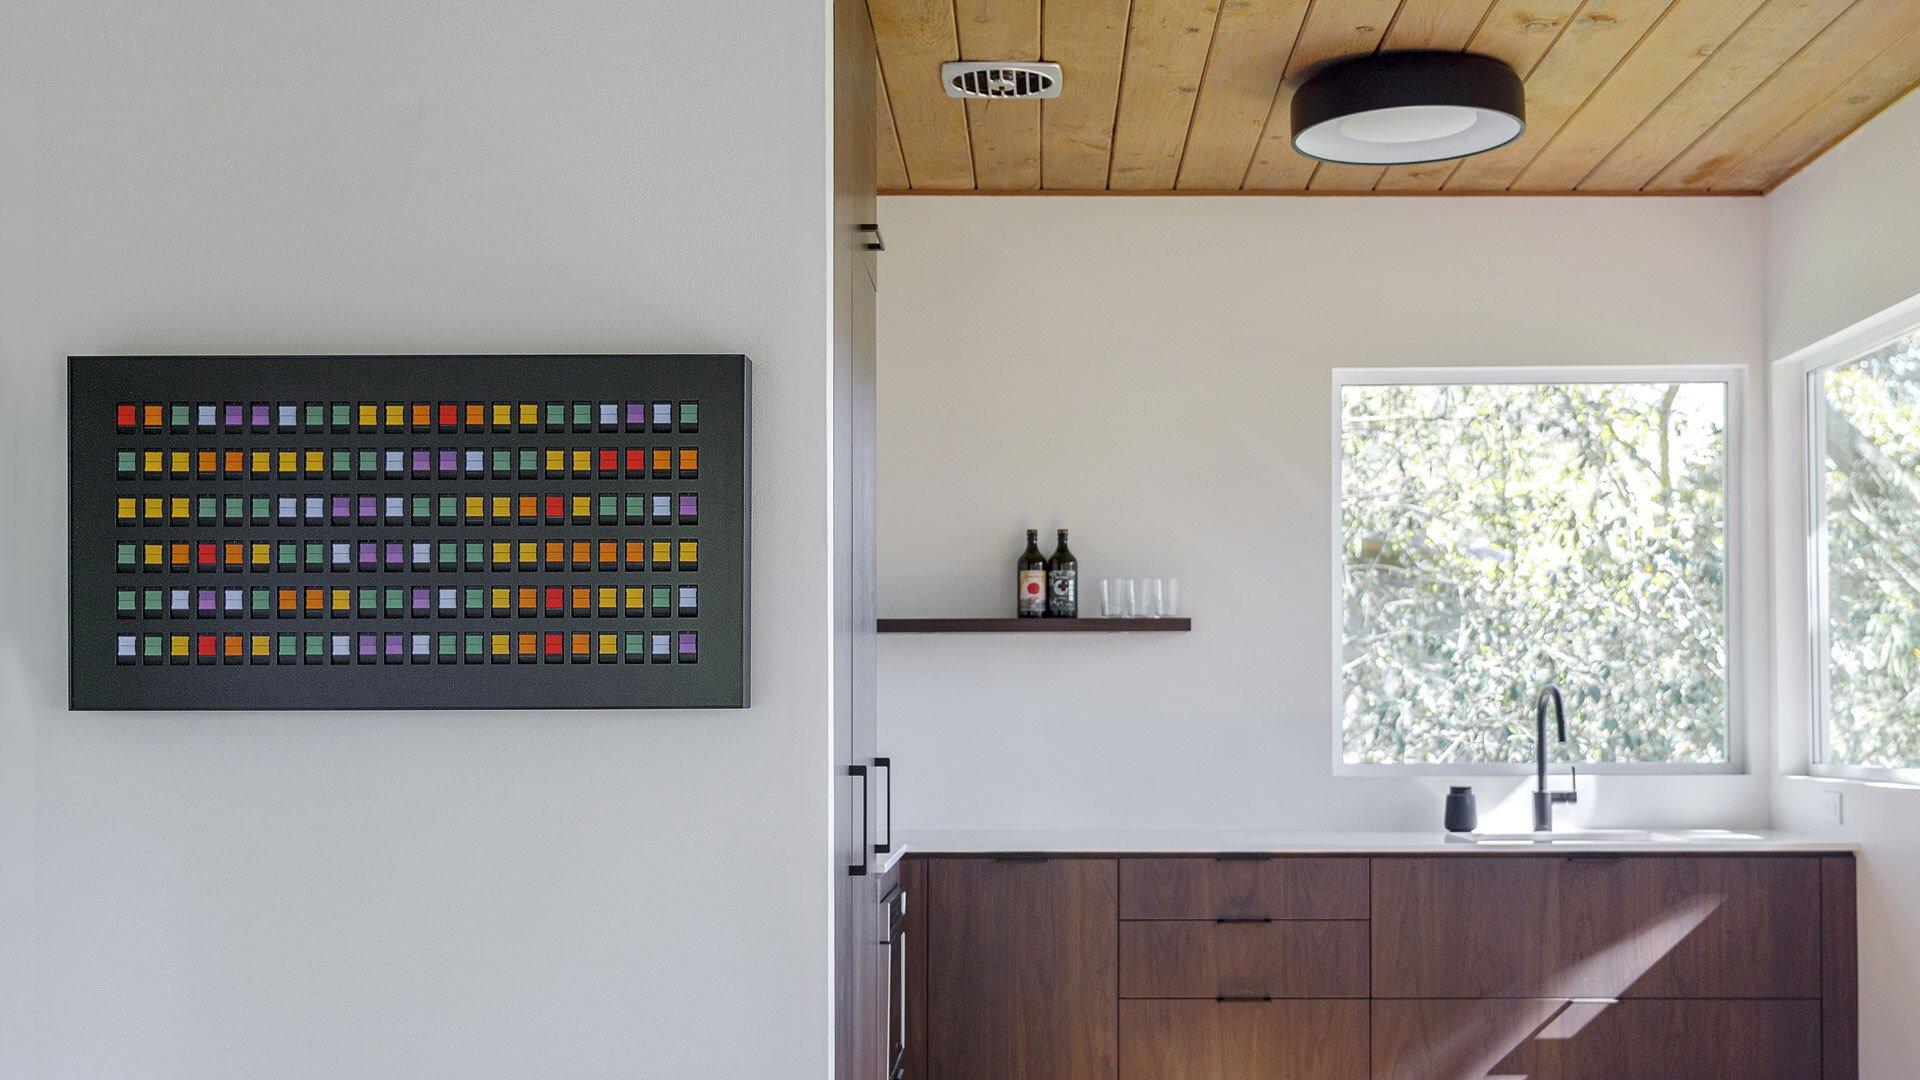 Vestaboard in home office displays a colorful pattern